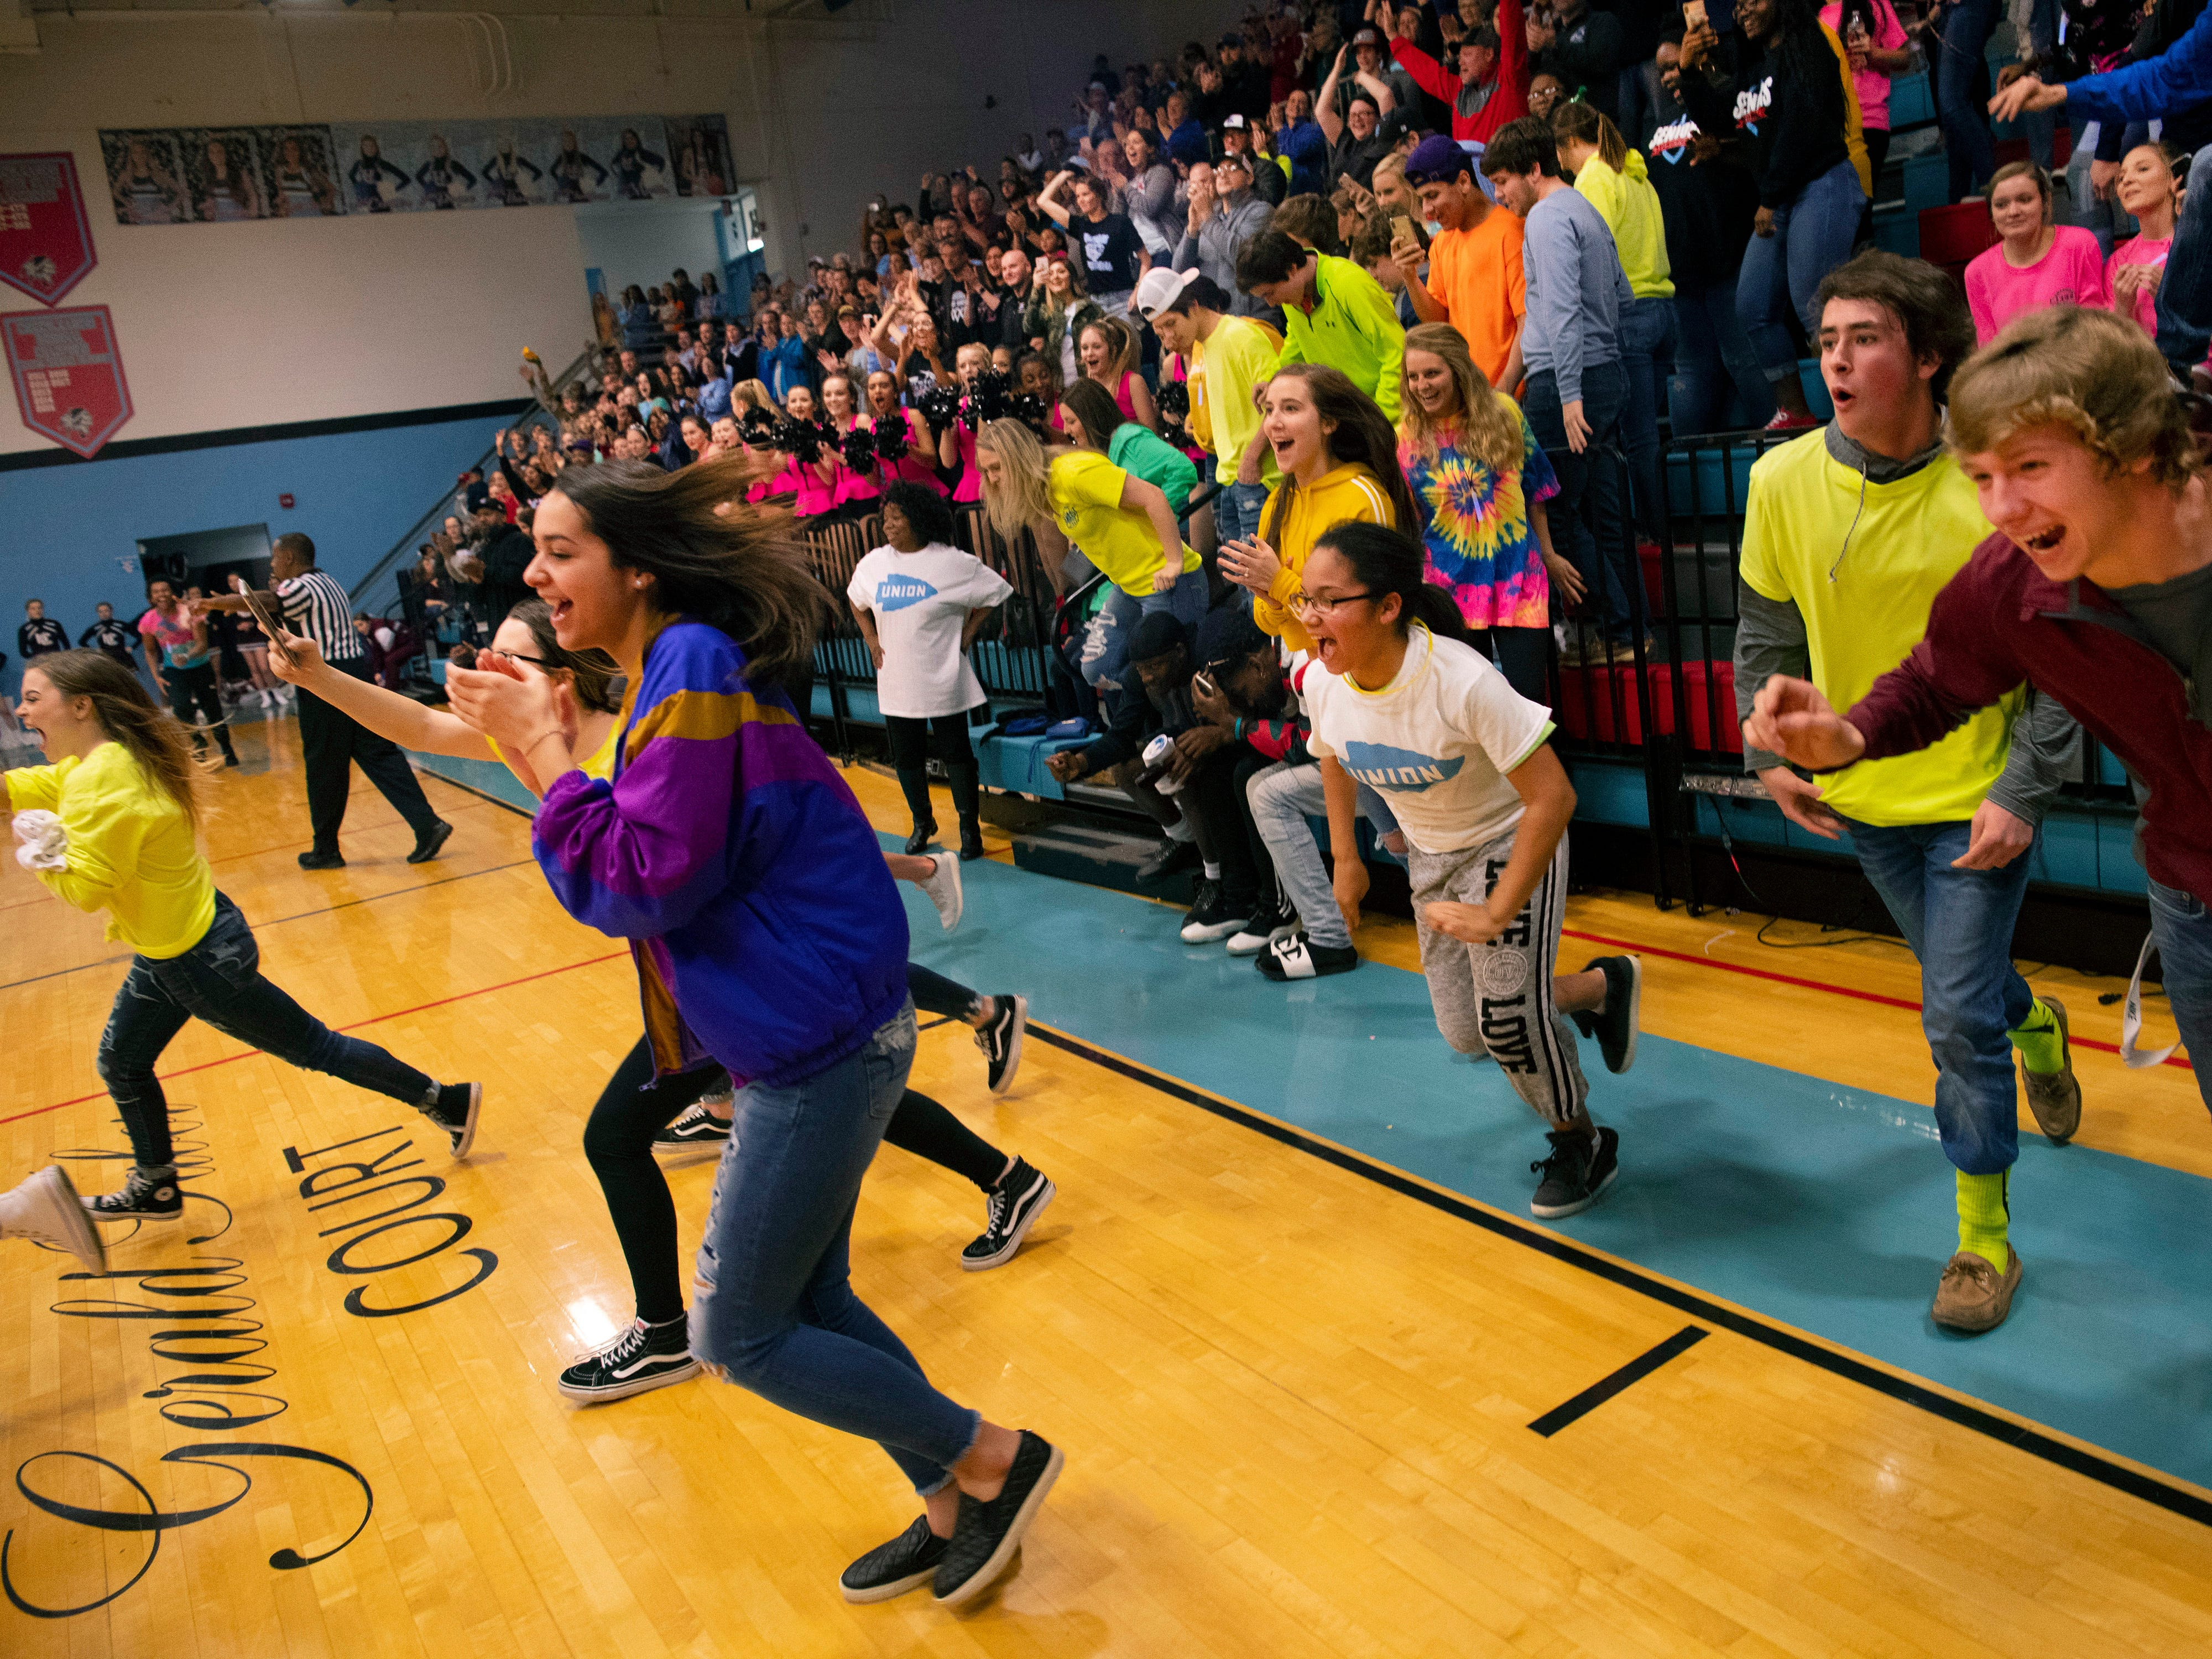 The Union County student section spills onto the floor after their boys basketball team salted away the game against Henderson County at Union County High School Monday night. The Braves snapped their 16-game losing streak against the Colonels.